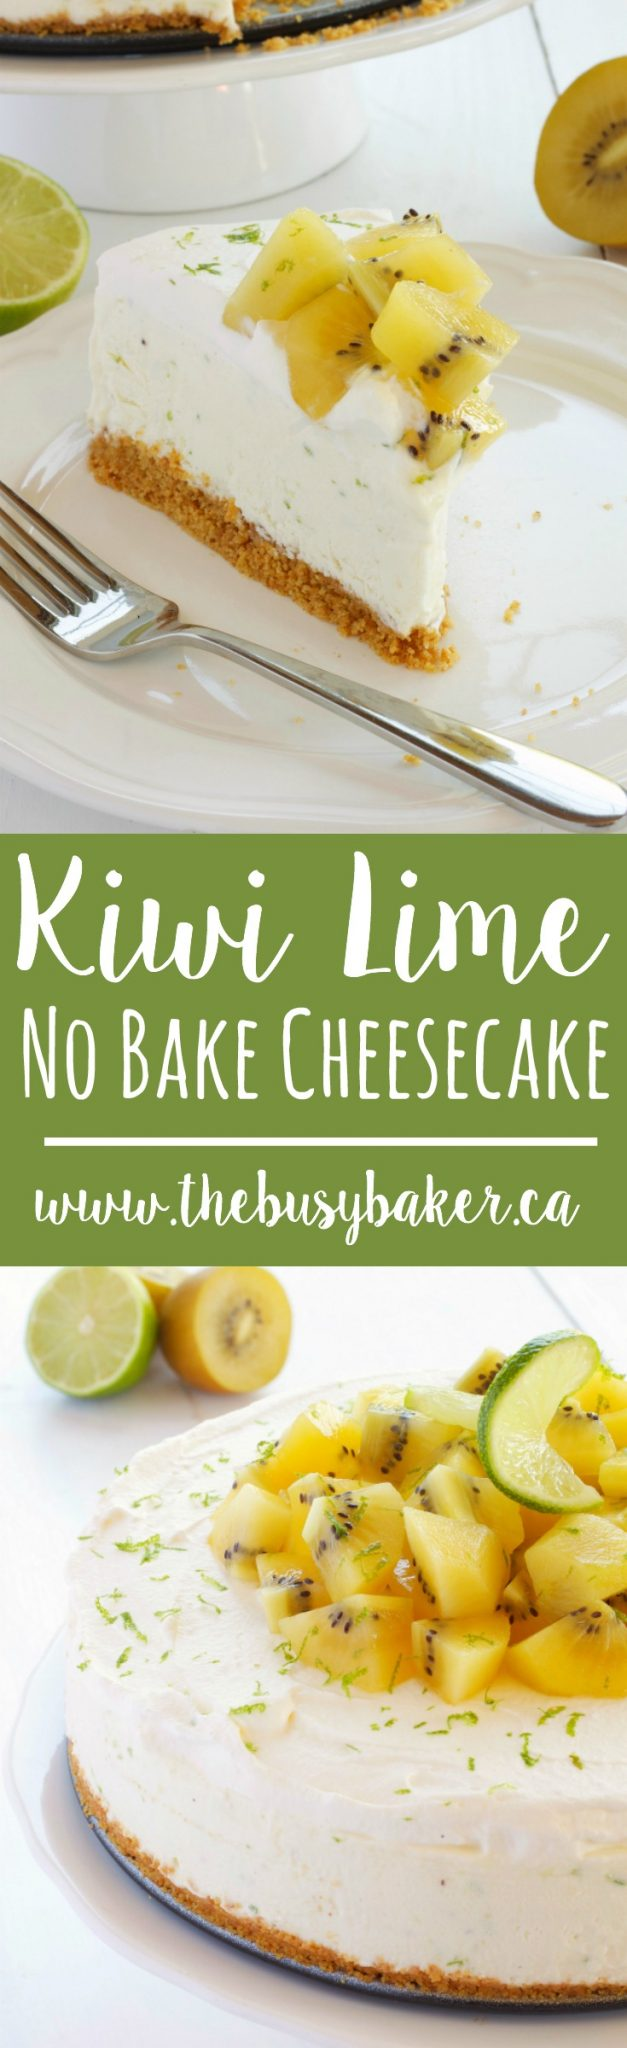 This Kiwi Lime No Bake Cheesecake is the perfect easy dessert for summer featuring fresh citrus flavours and delicious kiwifruit! Rich and creamy cheesecake filling paired with zesty lime and sweet, tart kiwifruit makes a simple summer sweet treat that's cool and refreshing, and great for entertaining! Recipe from thebusybaker.ca! #kiwicheesecake #kiwilime #summerdessert #summercheesecake #easynobakecheesecake via @busybakerblog